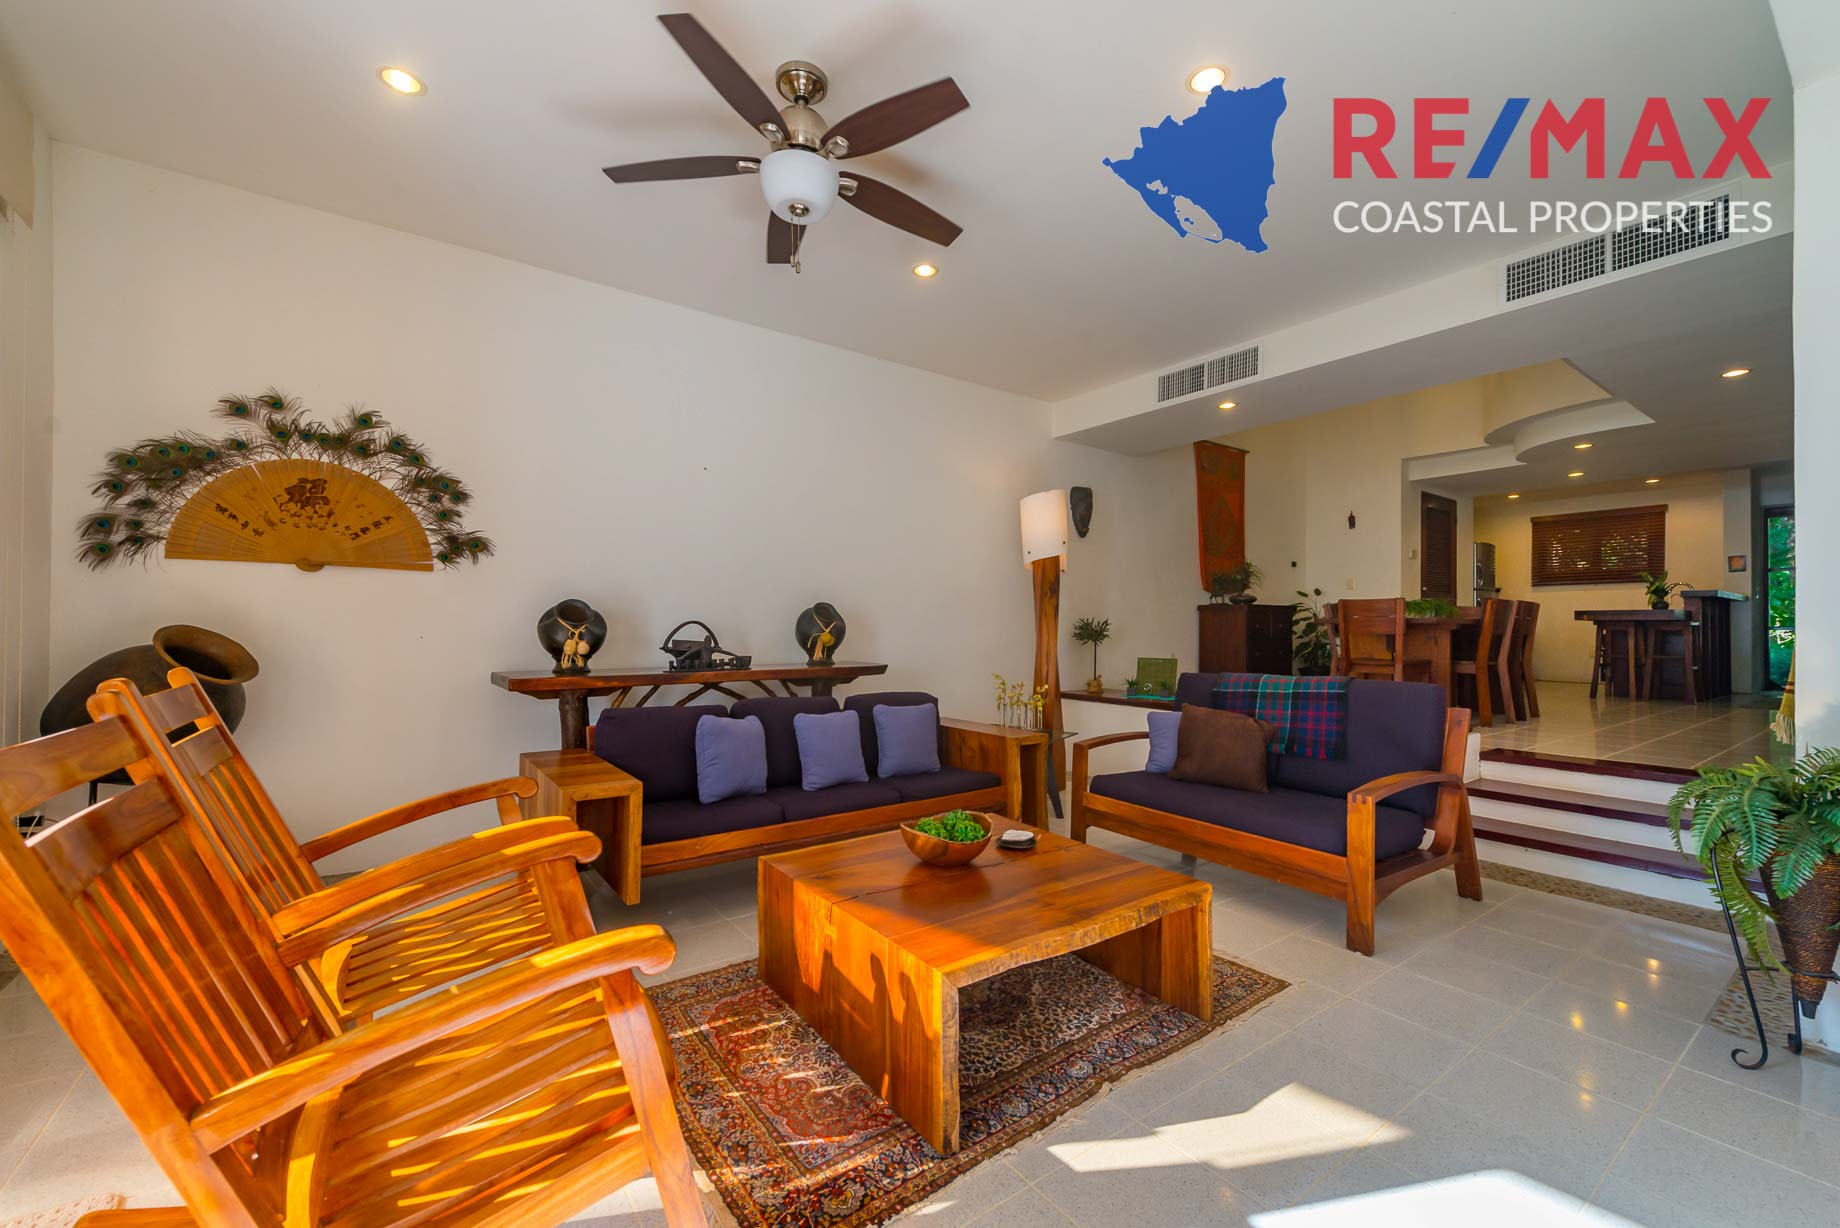 https://property-nicaragua.com/pedrodev/wp-content/uploads/2012/06/Playa-Coco-Townhome-2-REMAX-Coastal-Properties-10.jpg